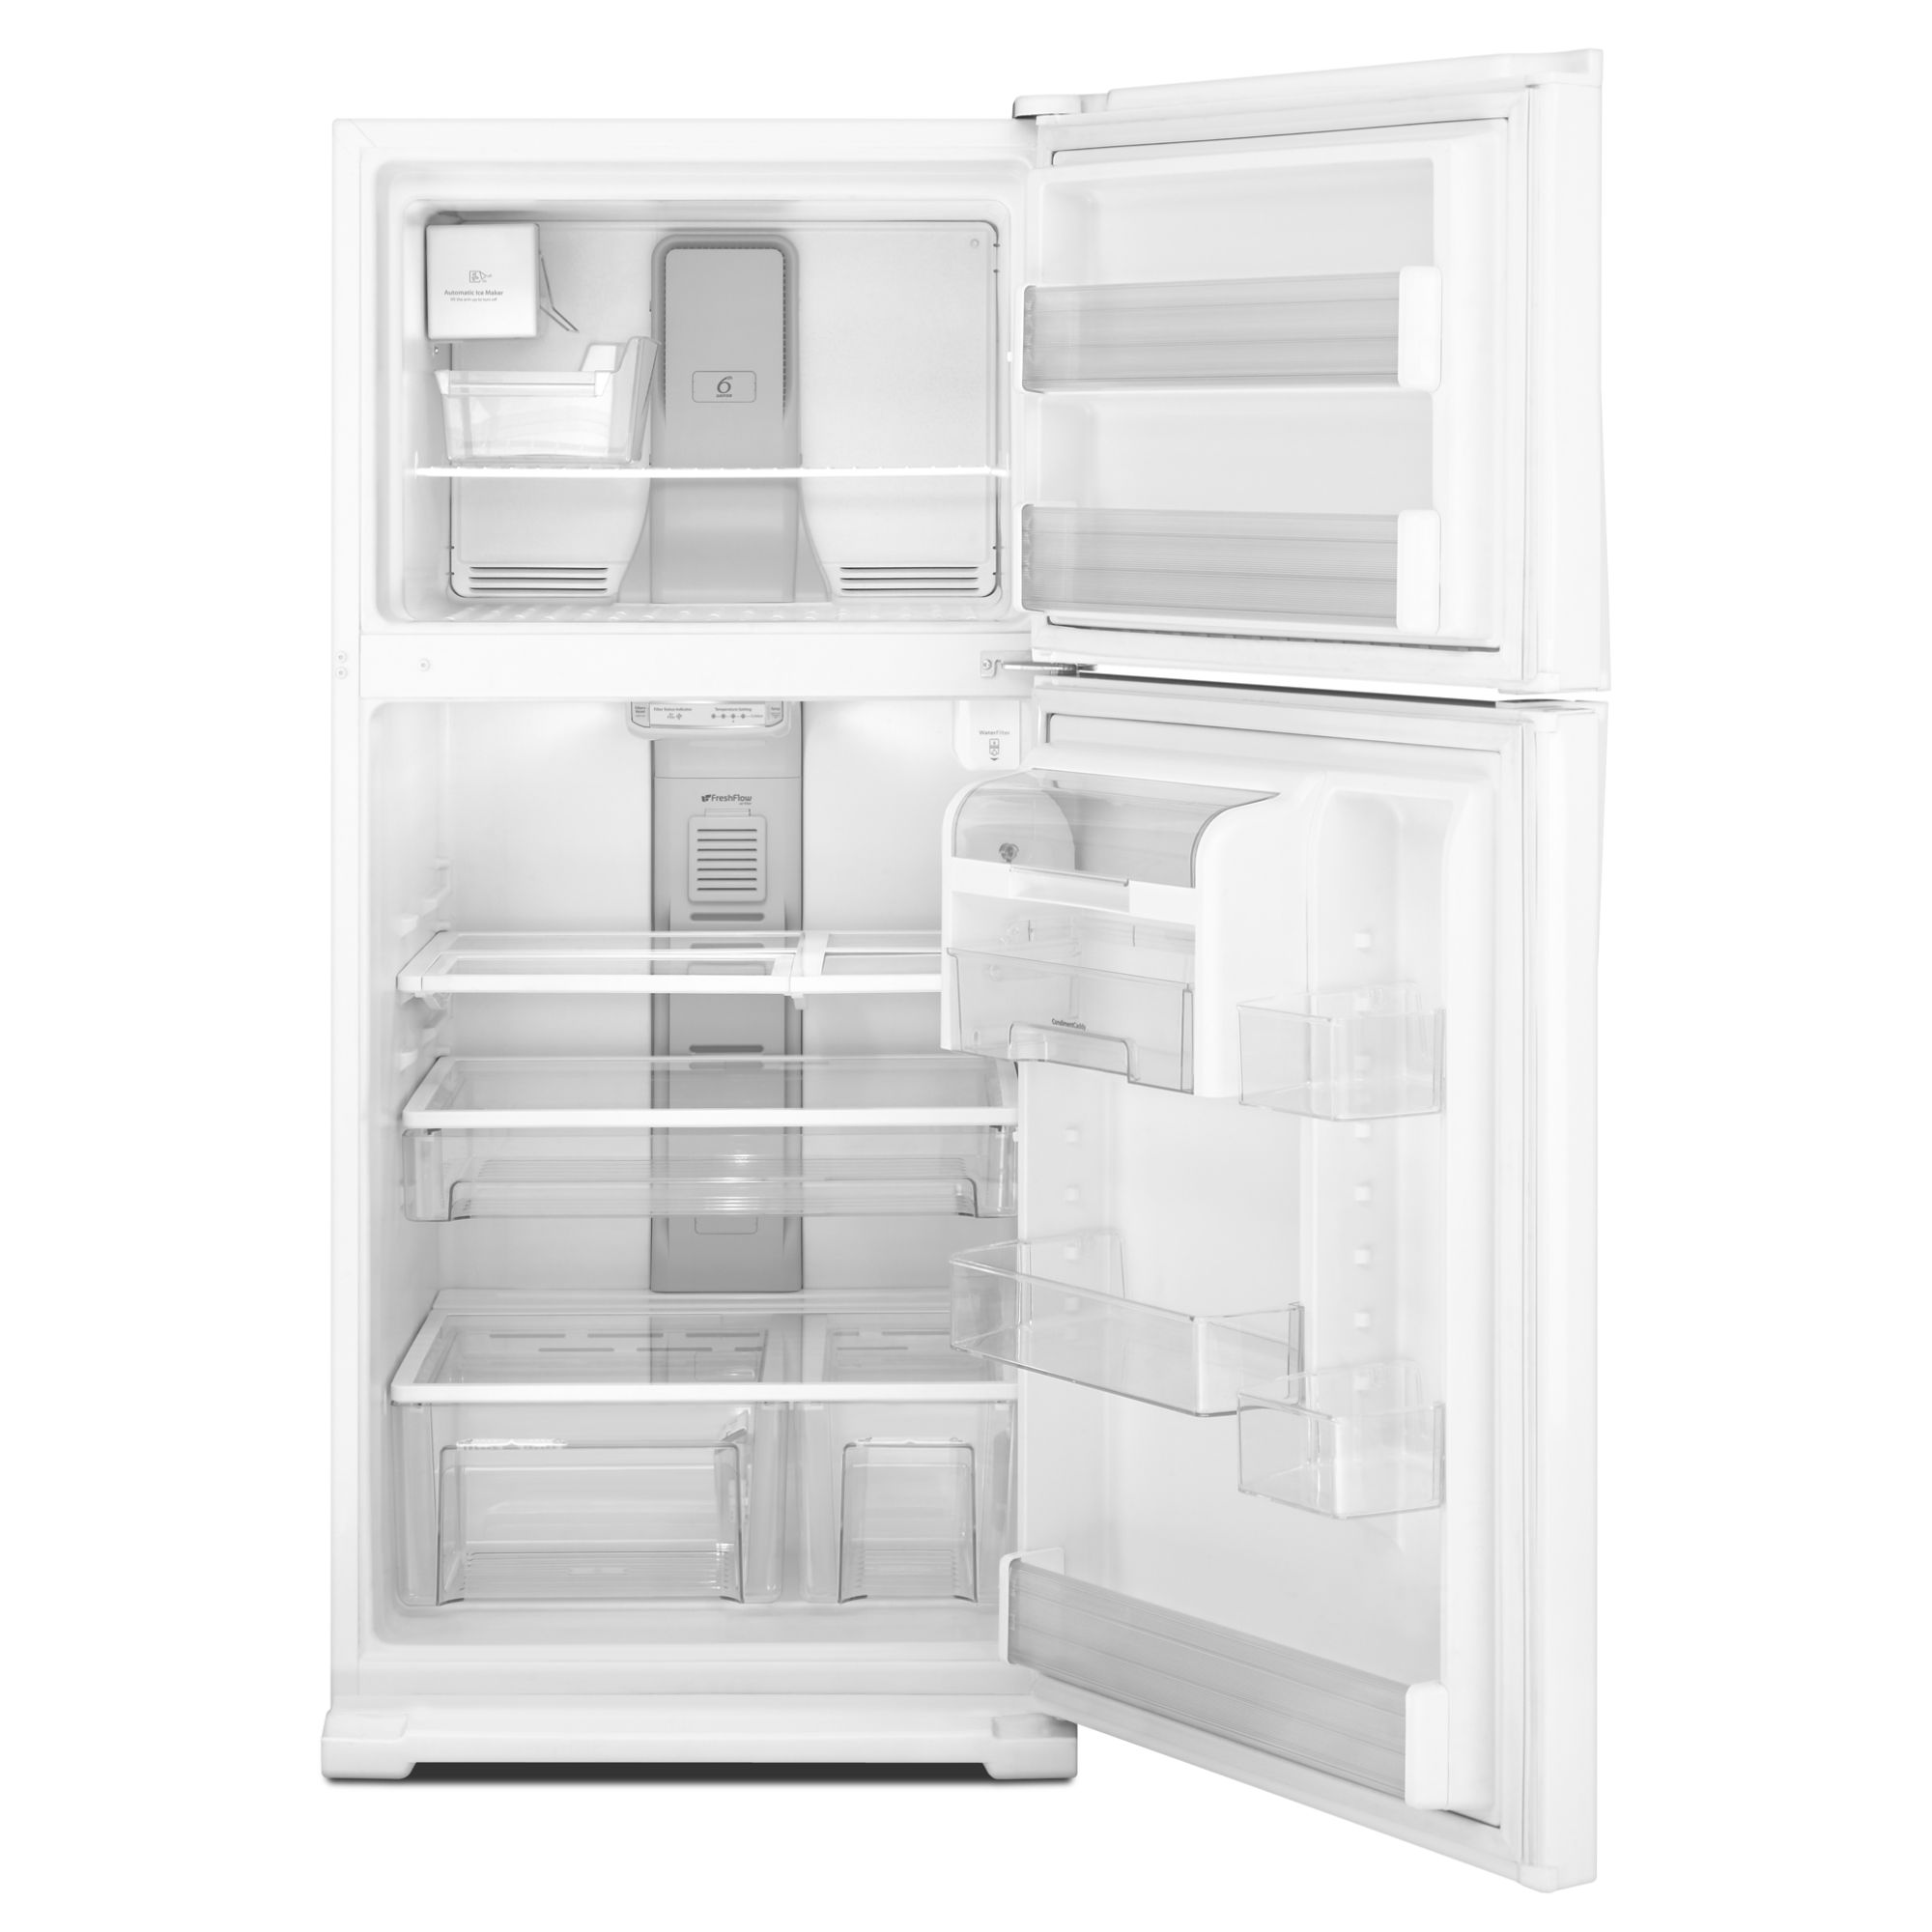 Whirlpool 18.9 cu. ft. Top-Freezer Refrigerator w/ CEE Tier 3 Rating - White